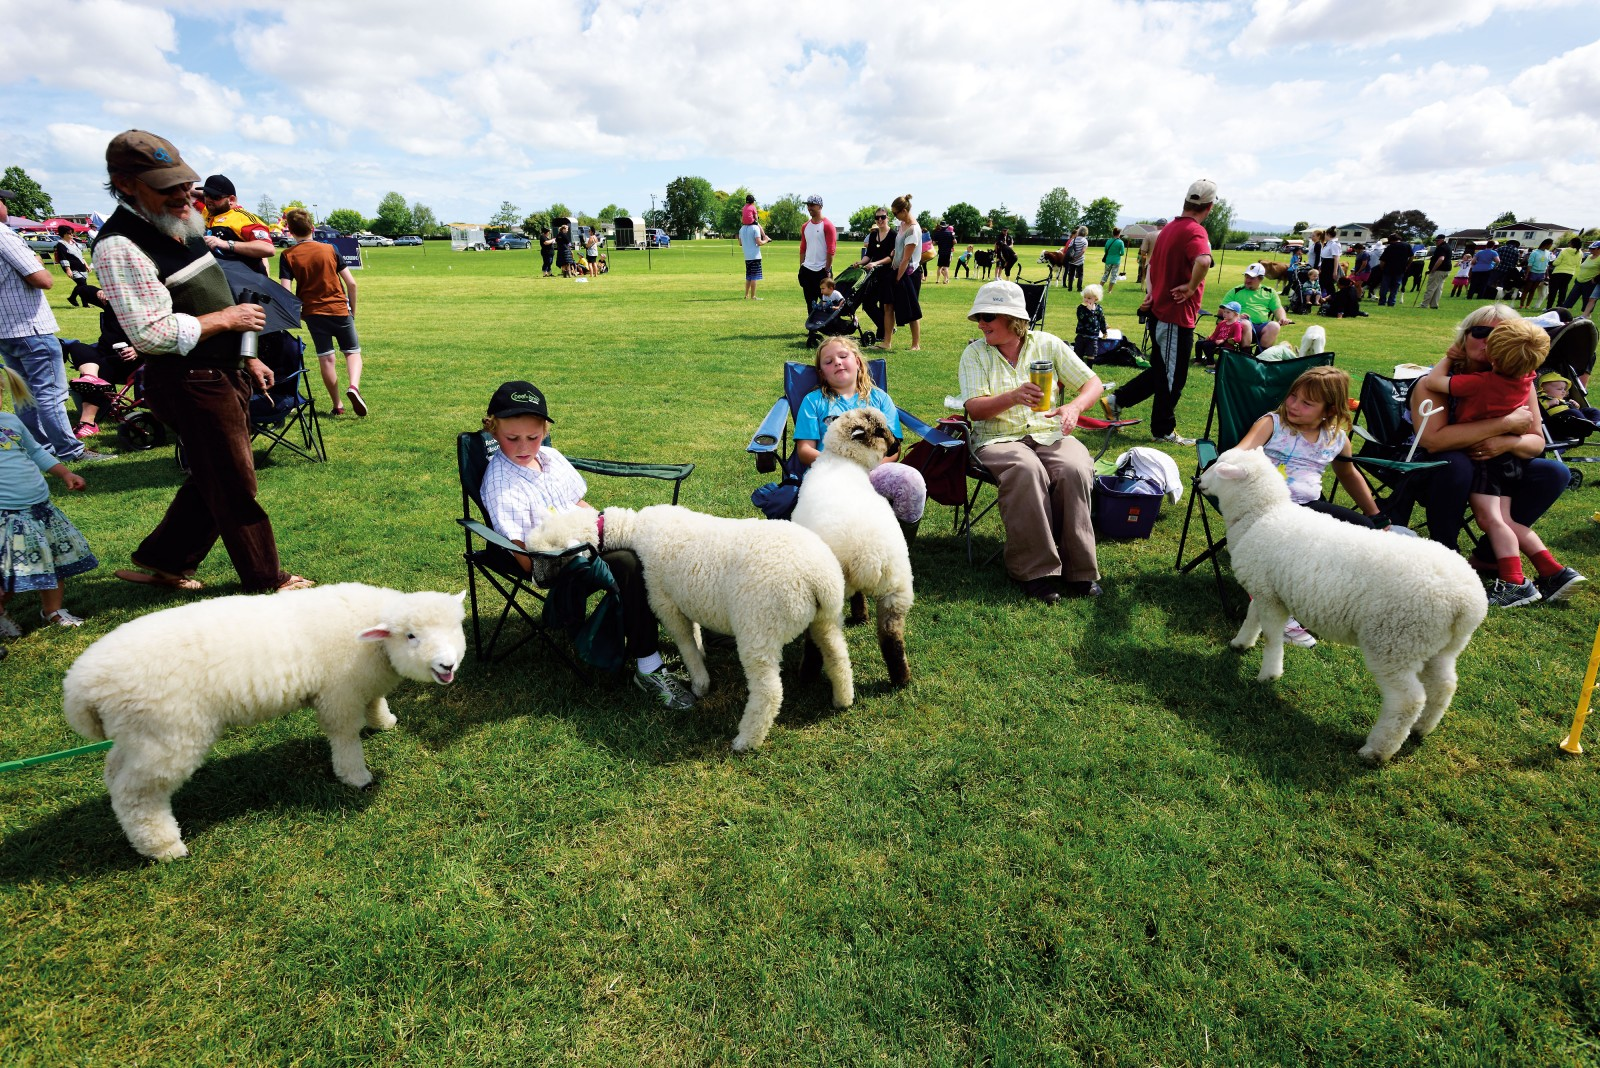 The Rural Show Day in the Ngatea domain draws in young handlers and calf club entrants from around the Hauraki Plains district, with sections for lambs and kid goats as well. Agricultural fairs are central to the character of rural towns such as Ngatea, though one local attendee commented that they used to see twice as many people at the event a decade ago, blaming the decline in farm labour and the rise of farm machinery.